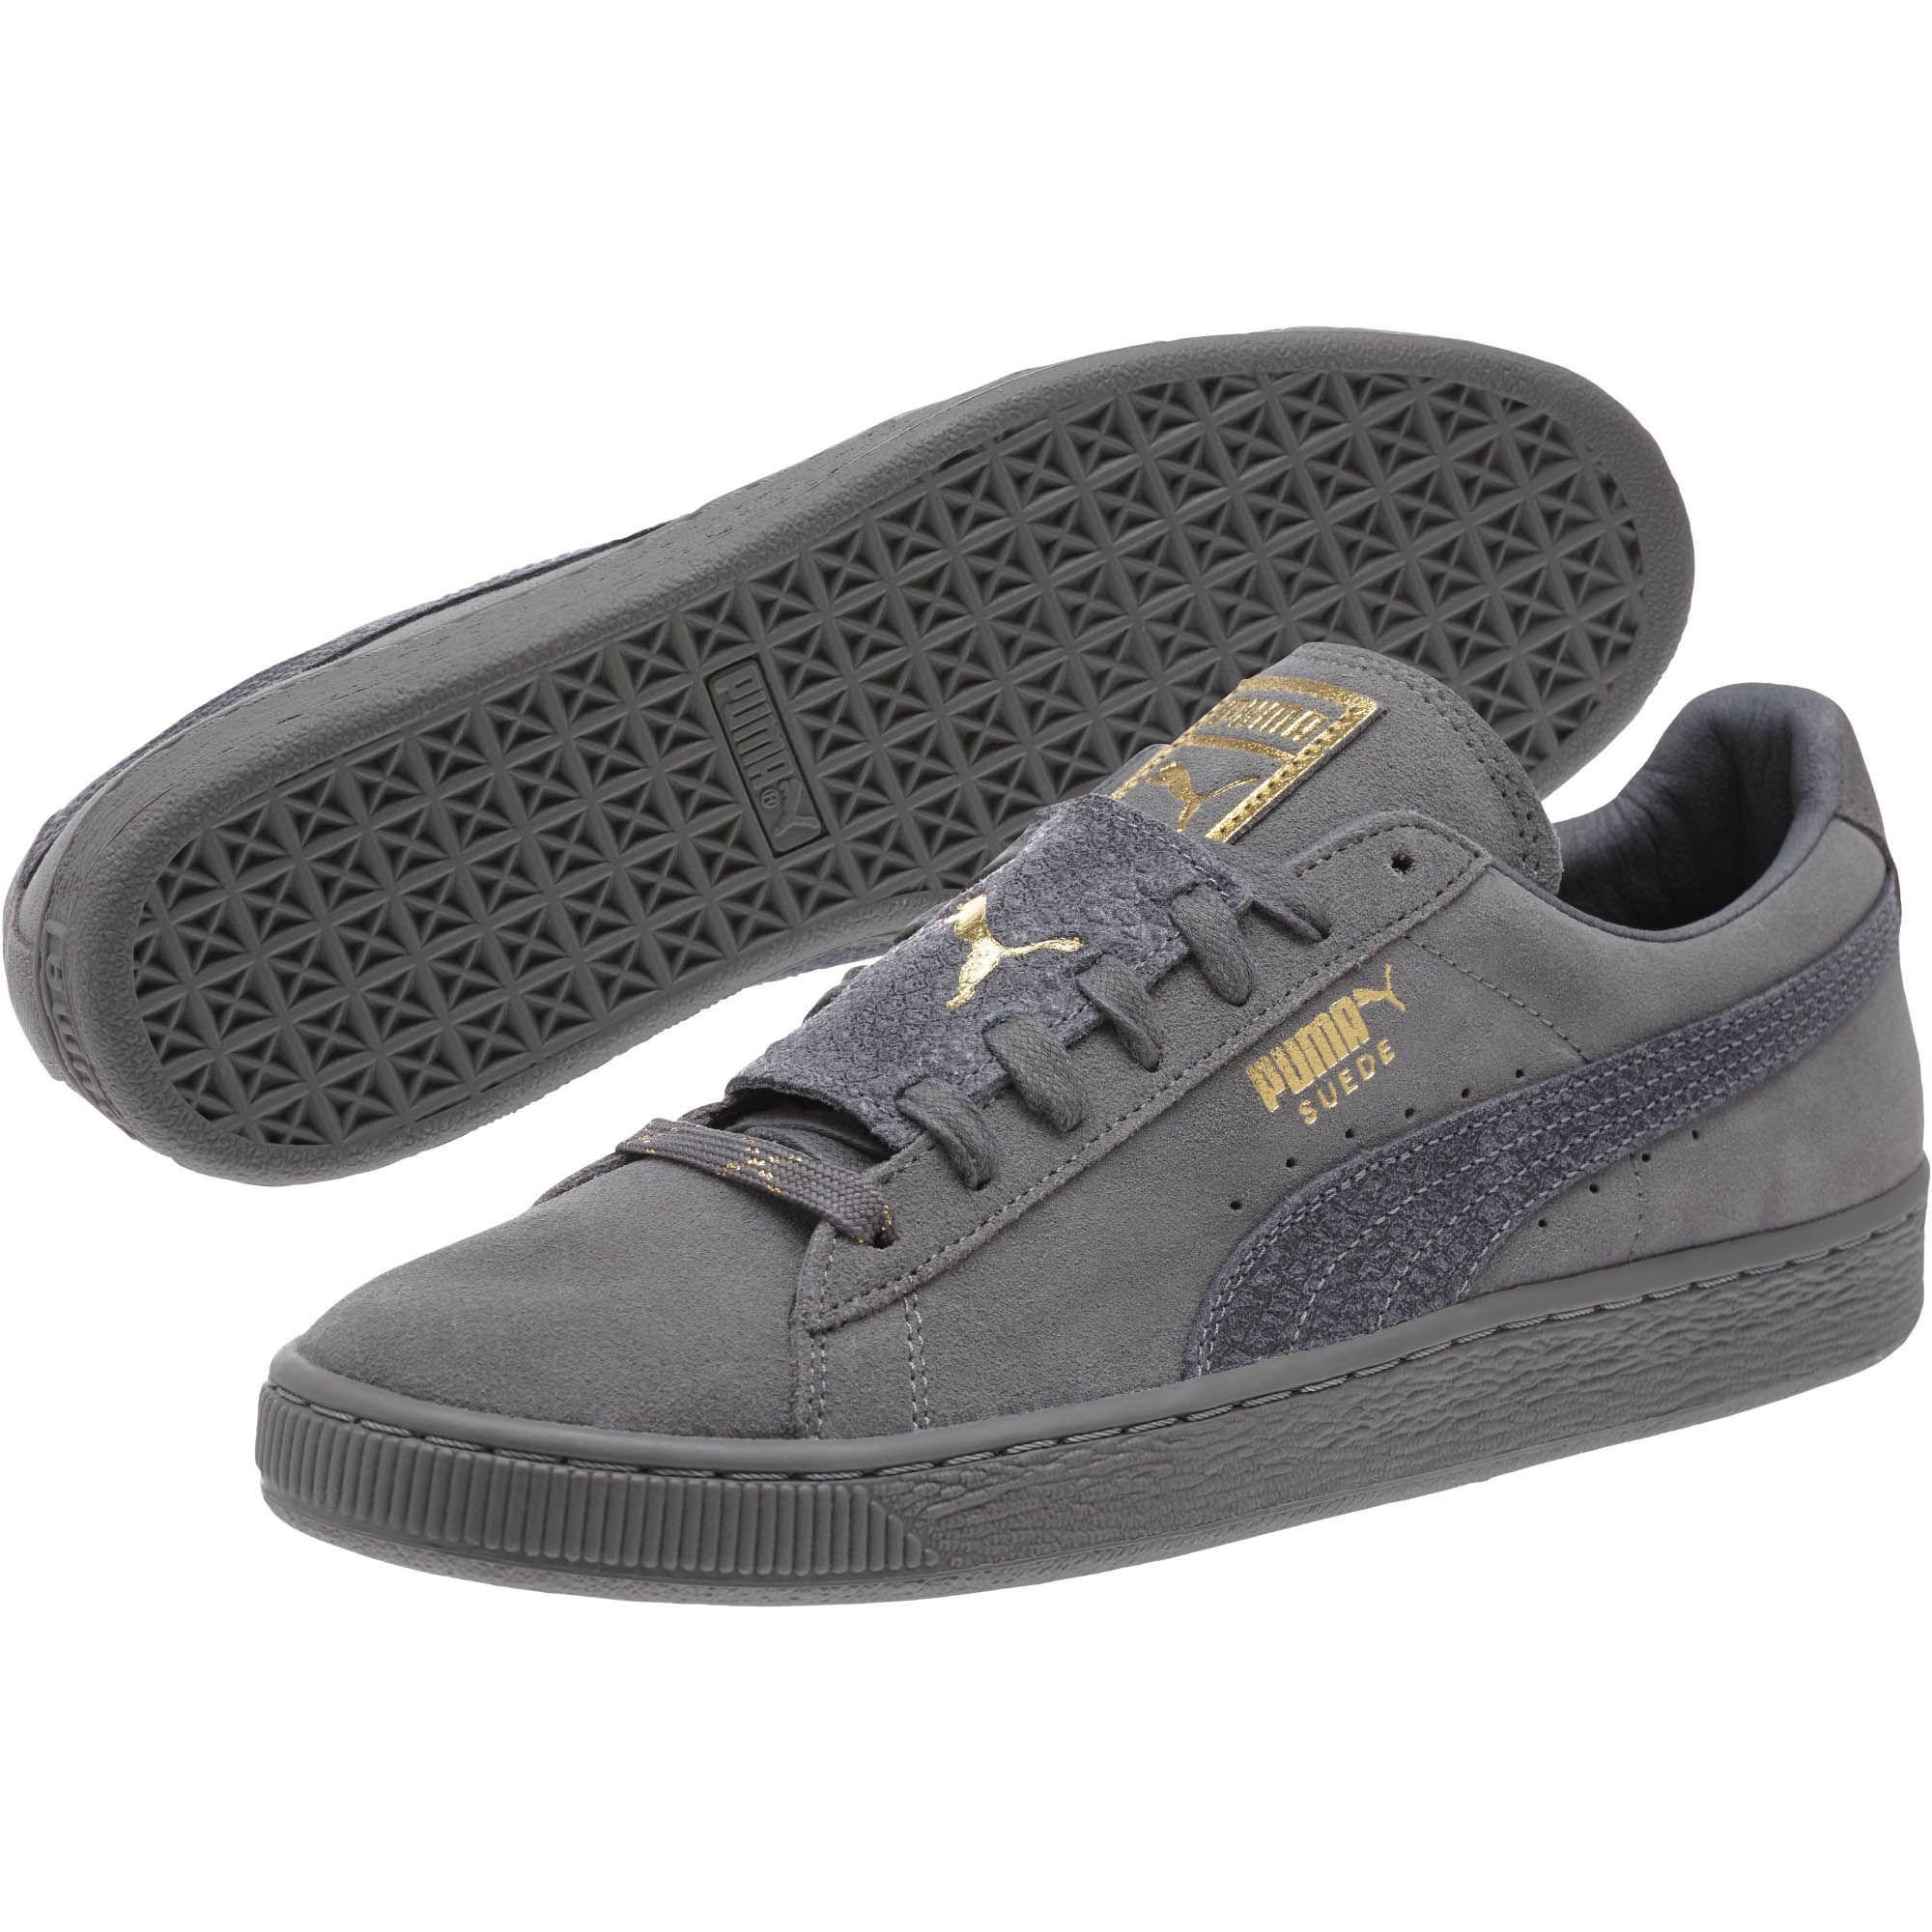 Lyst - PUMA Suede Classic Epic Snake Gold Men s Sneakers in Gray for Men 307c4c997